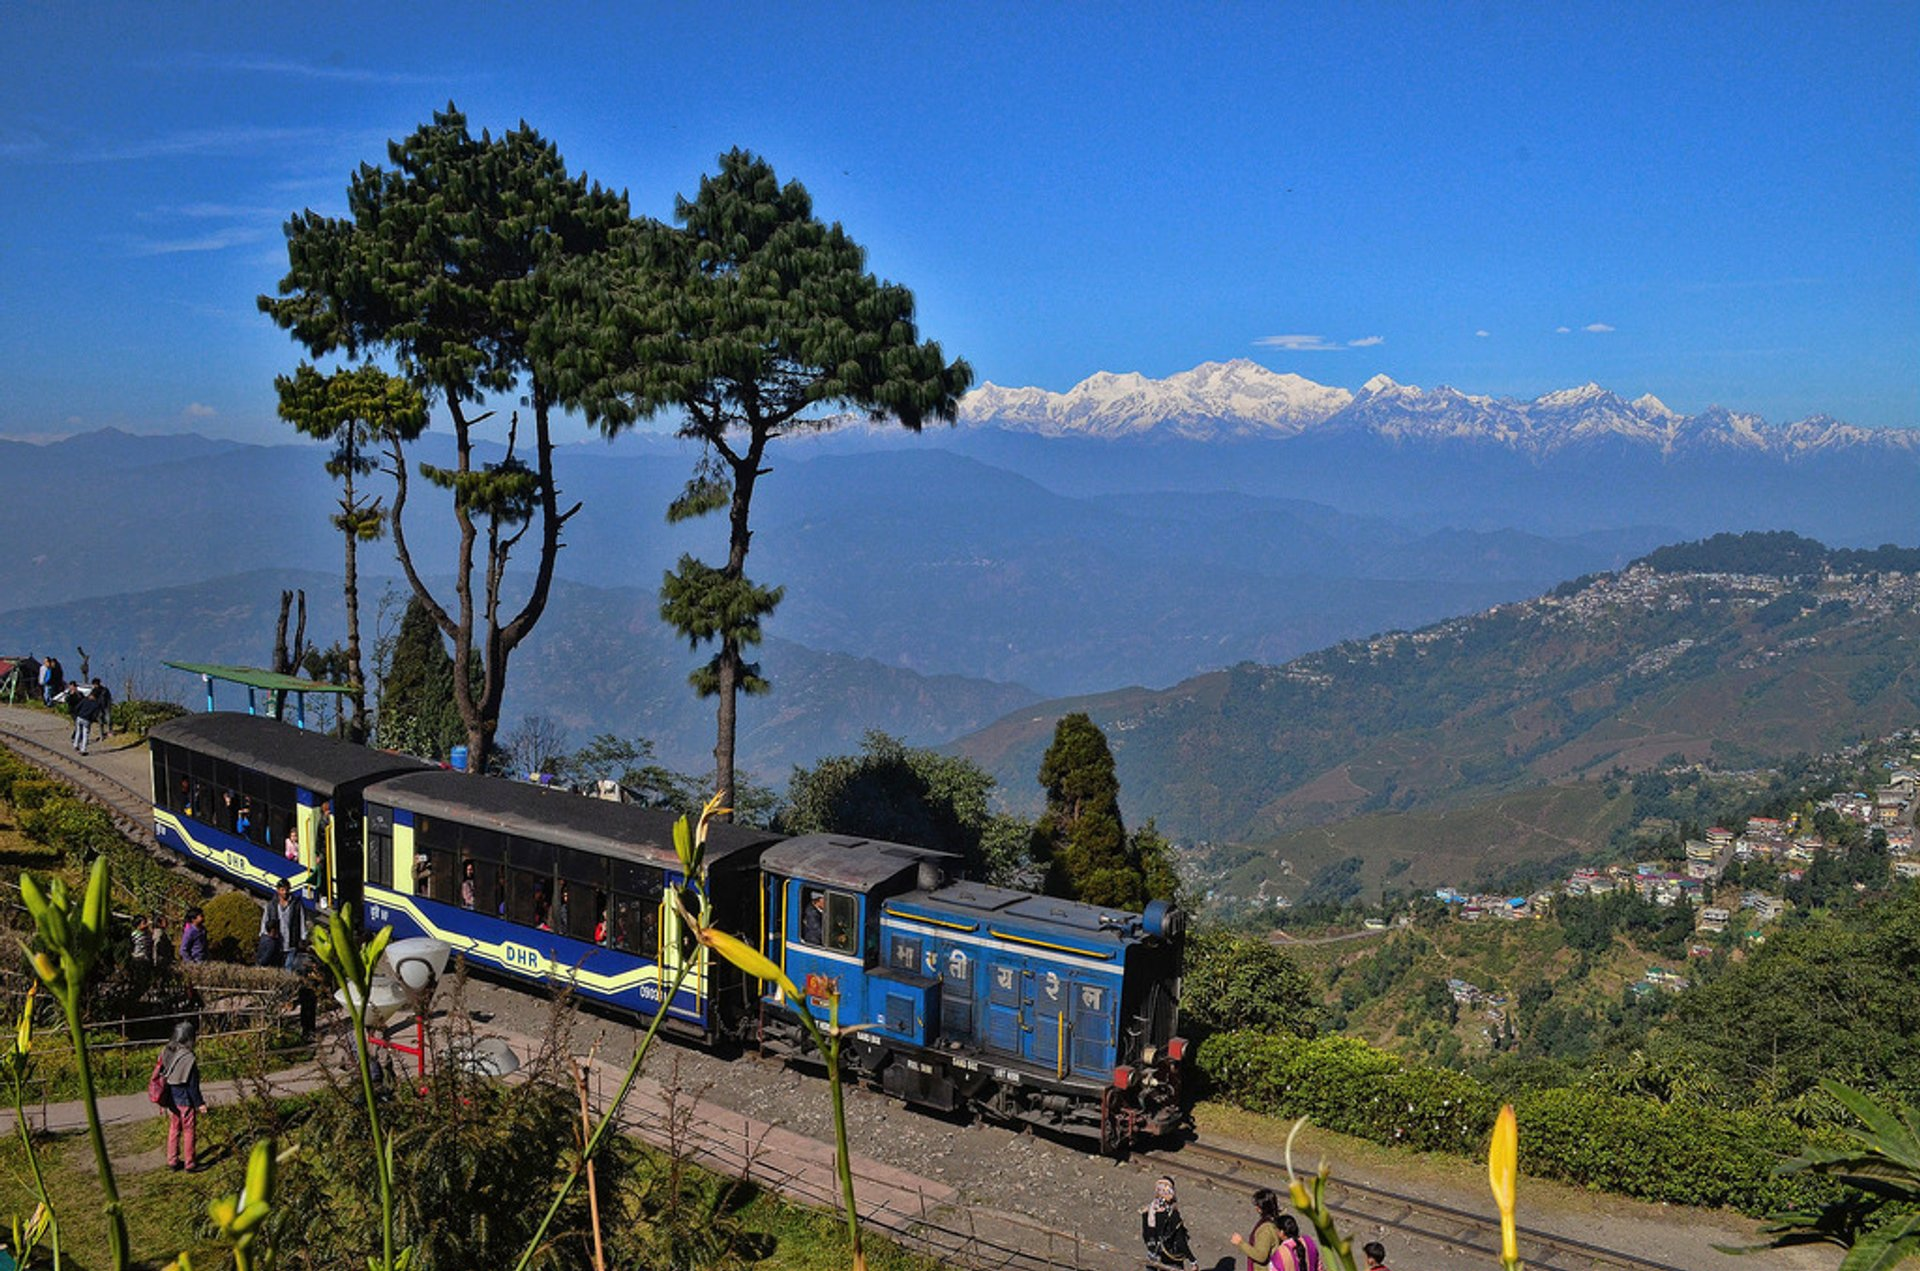 Darjeeling Himalayan Railway in India 2019 - Best Time